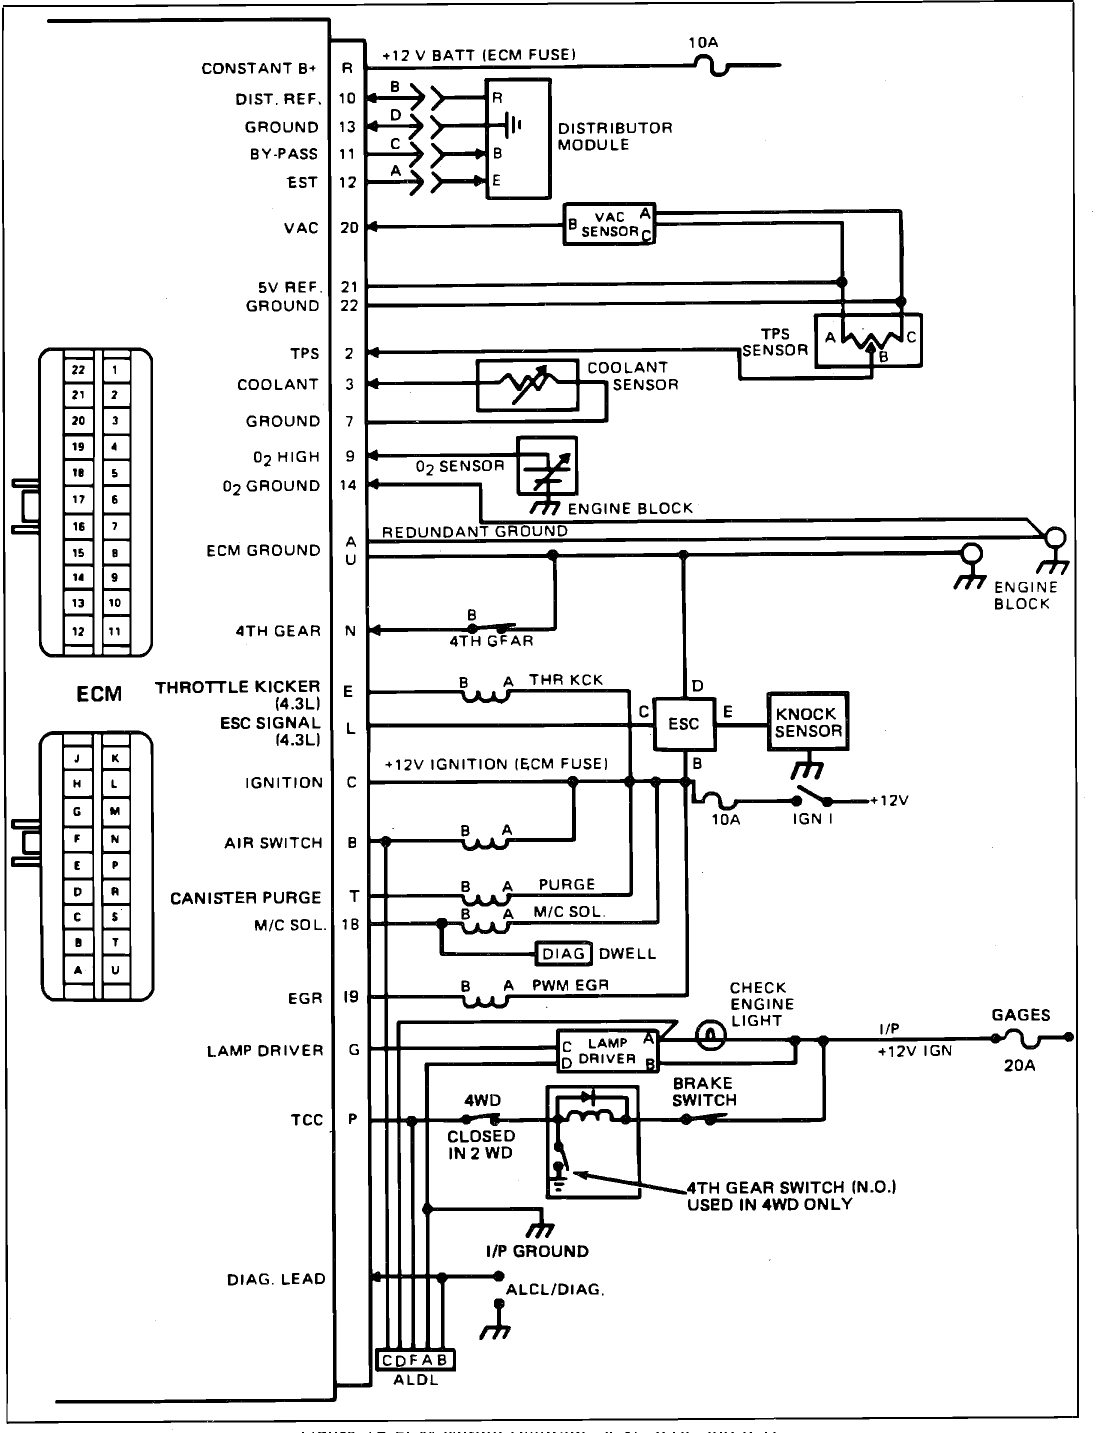 hight resolution of 1991 chevy corsica fuse diagram